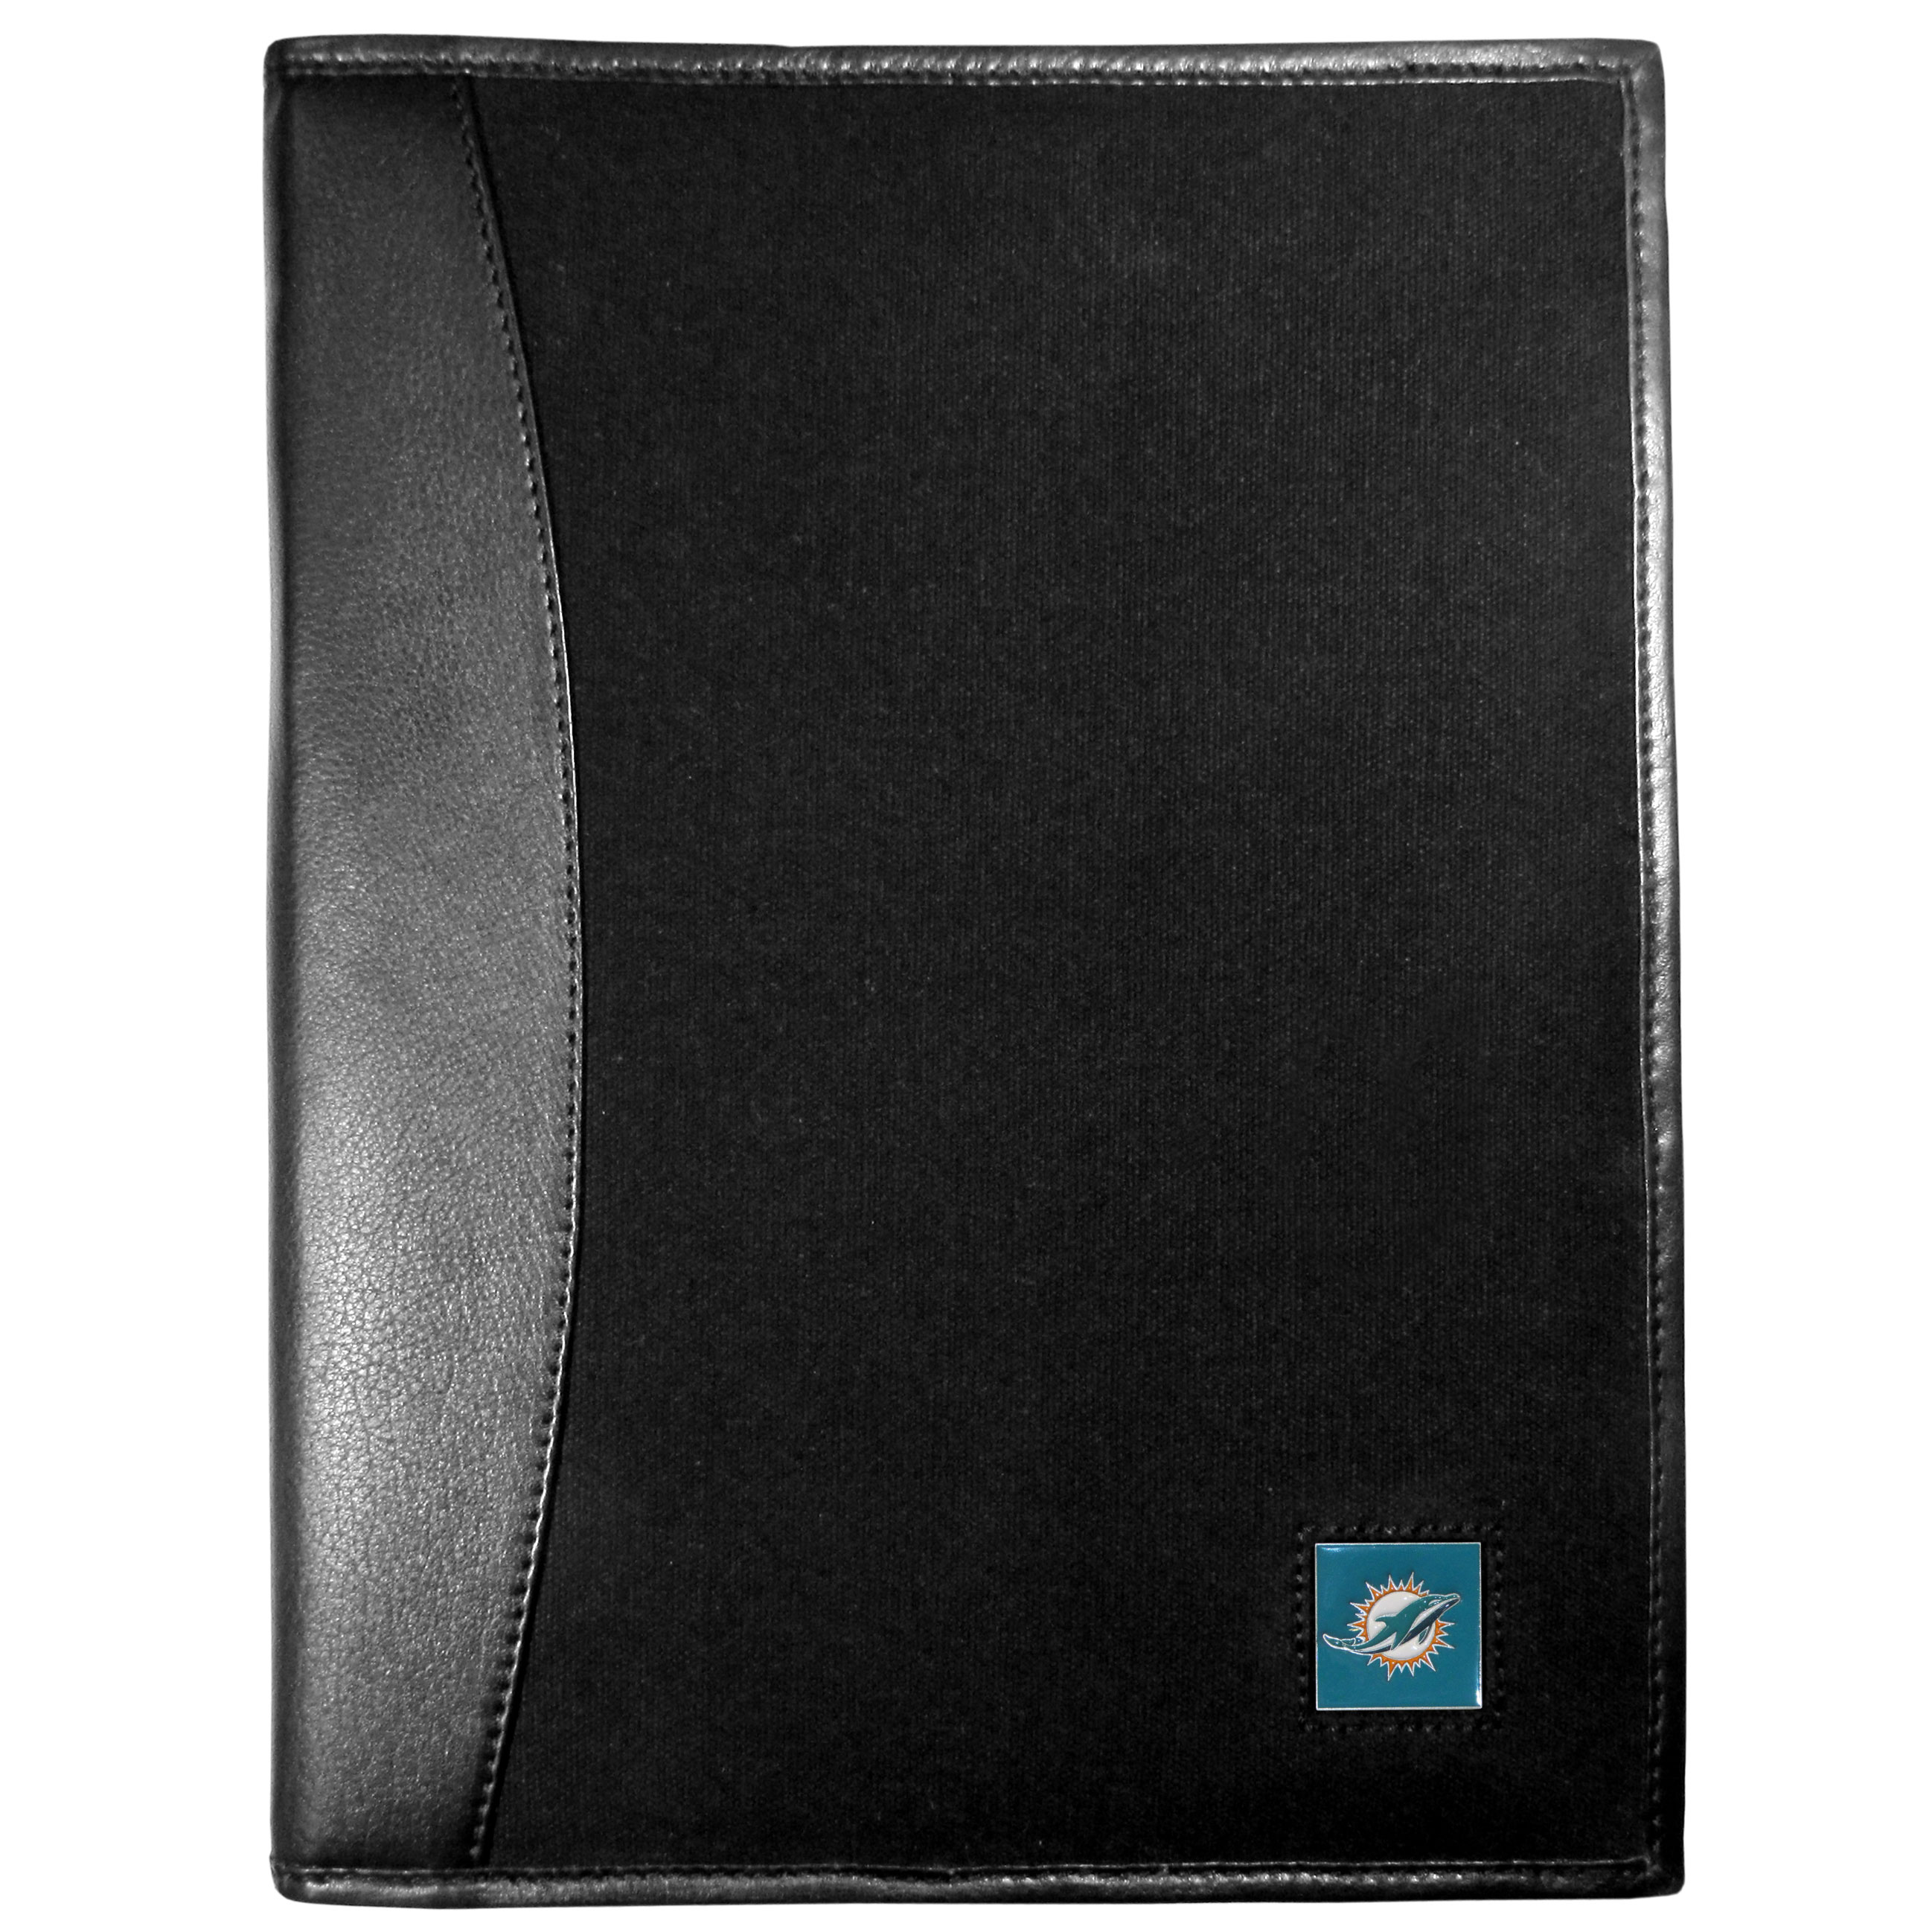 Miami Dolphins Leather and Canvas Padfolio - Our leather and canvas padfolio perfectly blends form and function. The attractive portfolio is bound in fine grain leather with an attractive canvas finish and the interior is a soft nylon. This high quality business accessory also features a fully cast metal Miami Dolphins emblem that is subtly set in the corner of the organizer. It is packed with features like 6 card slots for badges, business cards, hotel keys or credit cards and ID with a large pocket for loose papers and a writing tablet slot making it a must-have for the professional on the go.